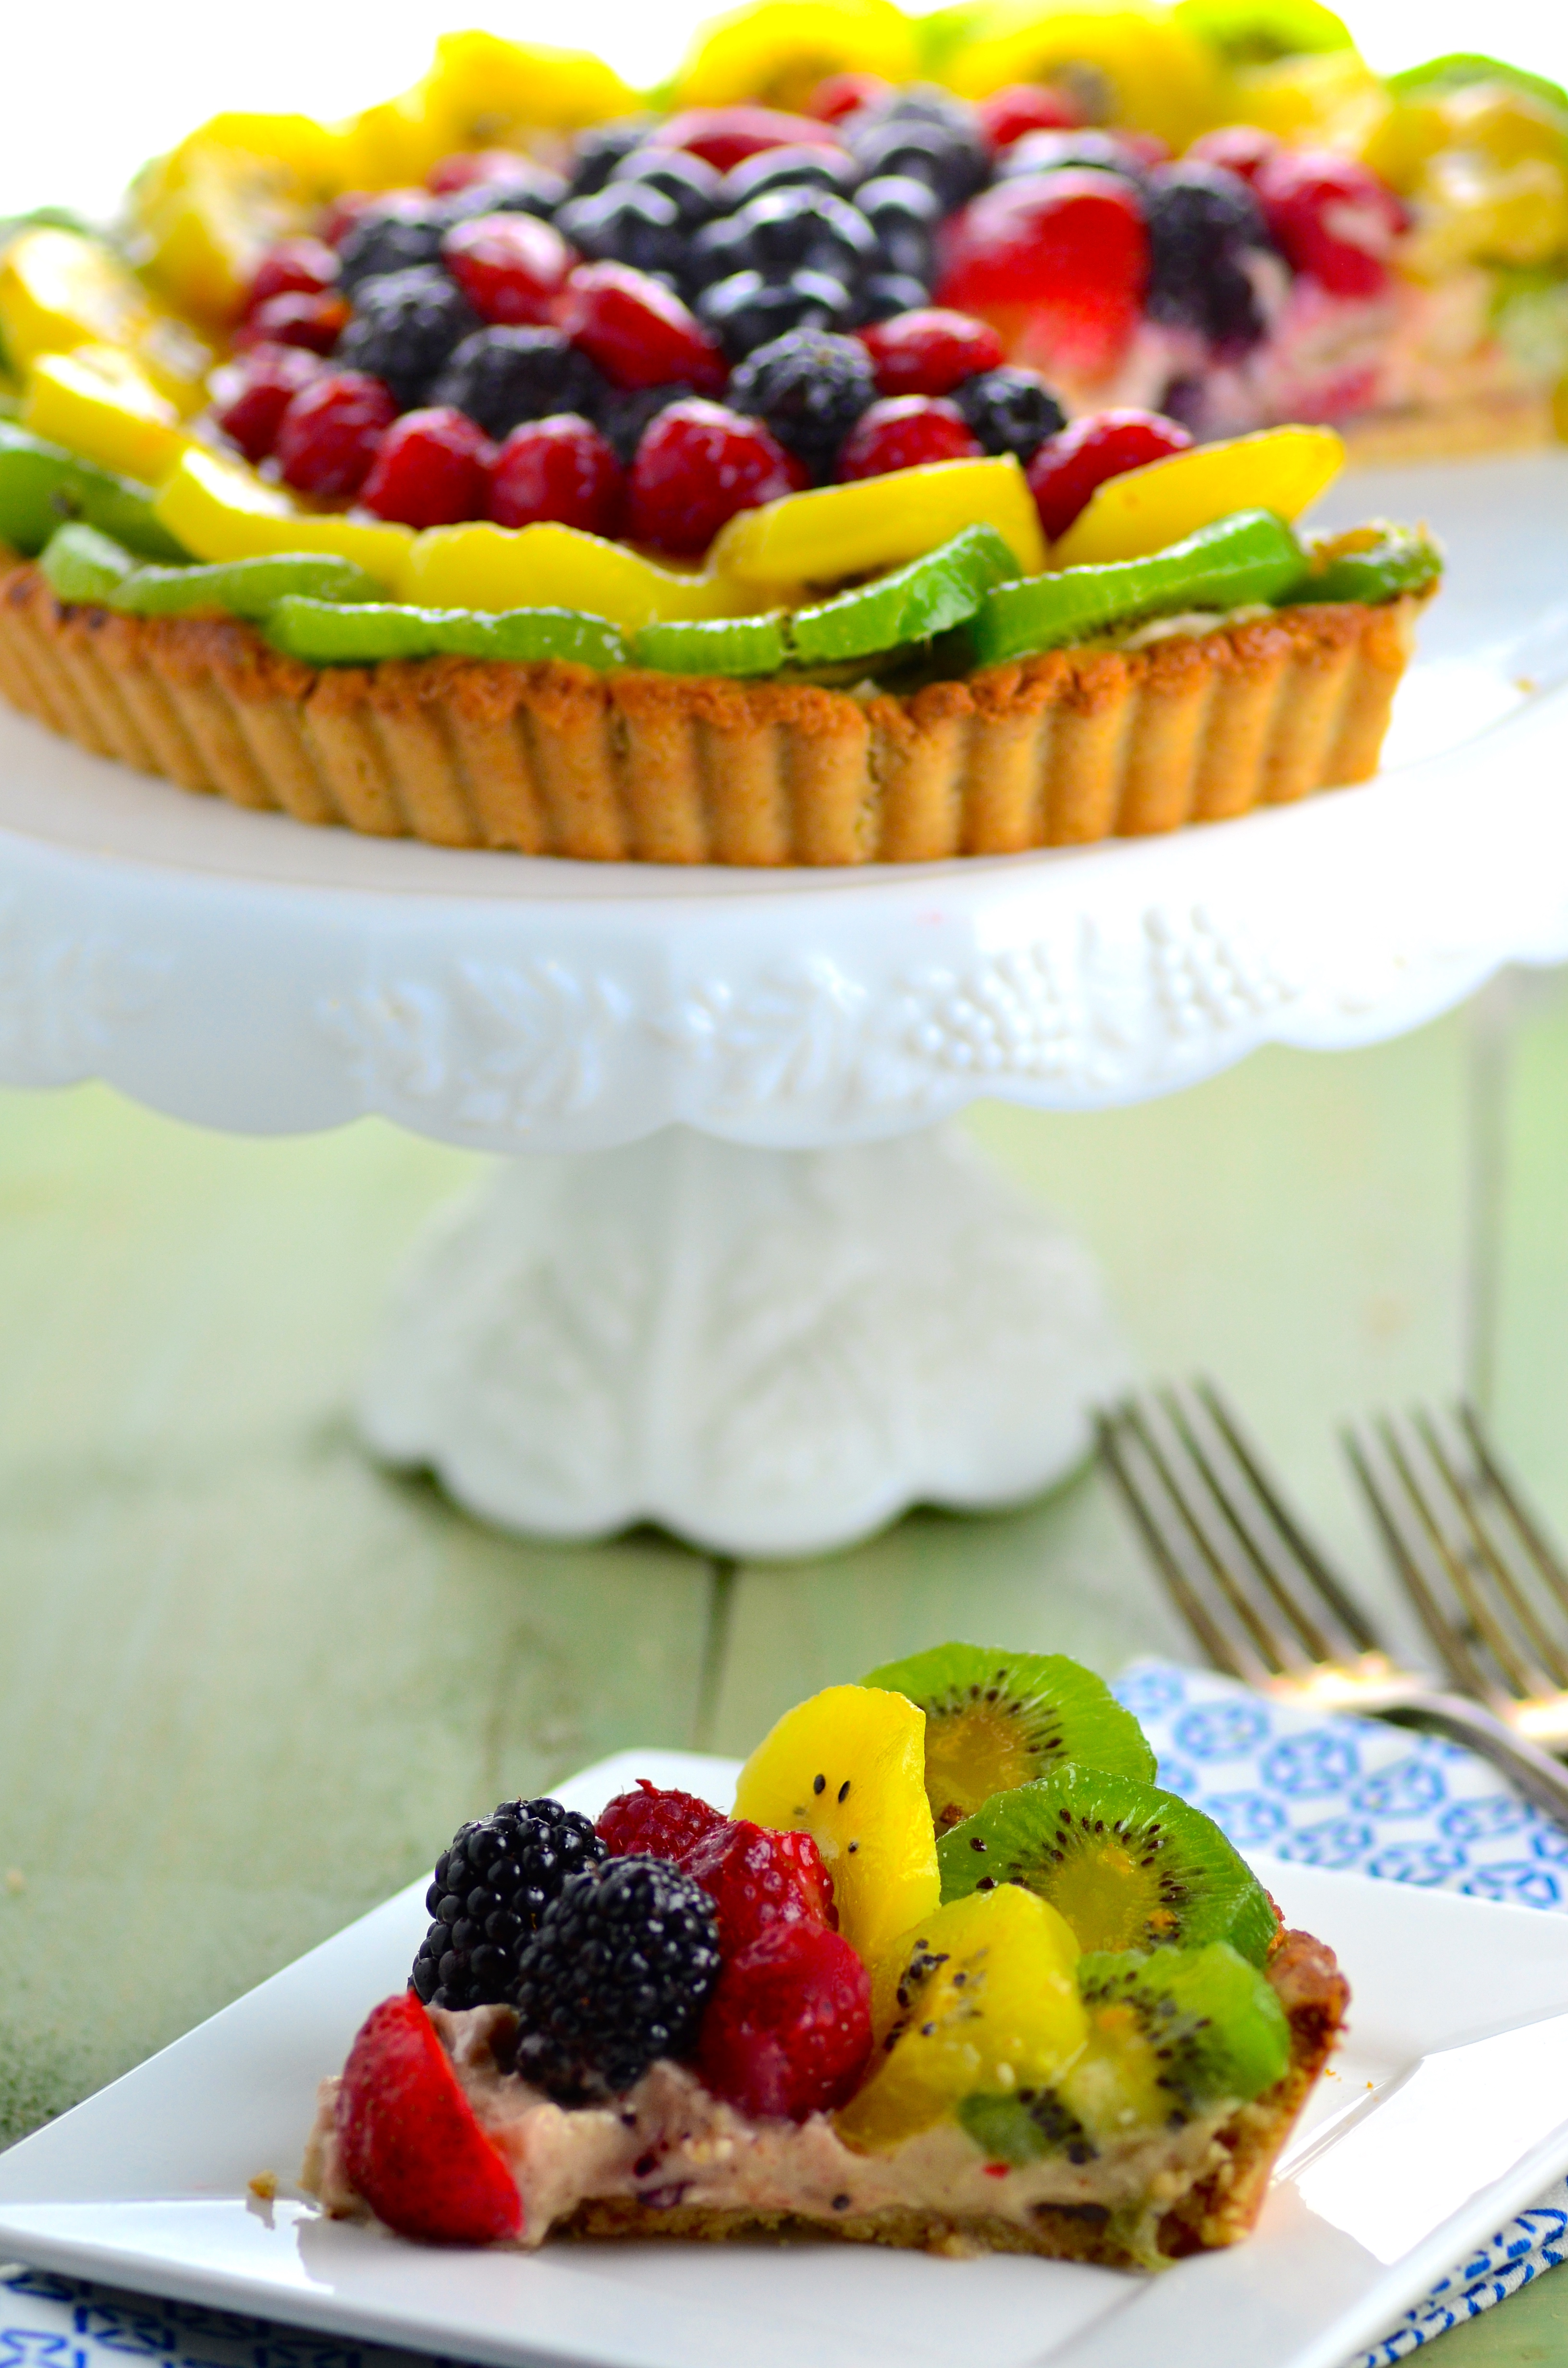 Gltuten Free Fruit & Cashew Cream Tart - Vegan, gluten free, no refined sugars and full of flavor ! A perfect summer dessert